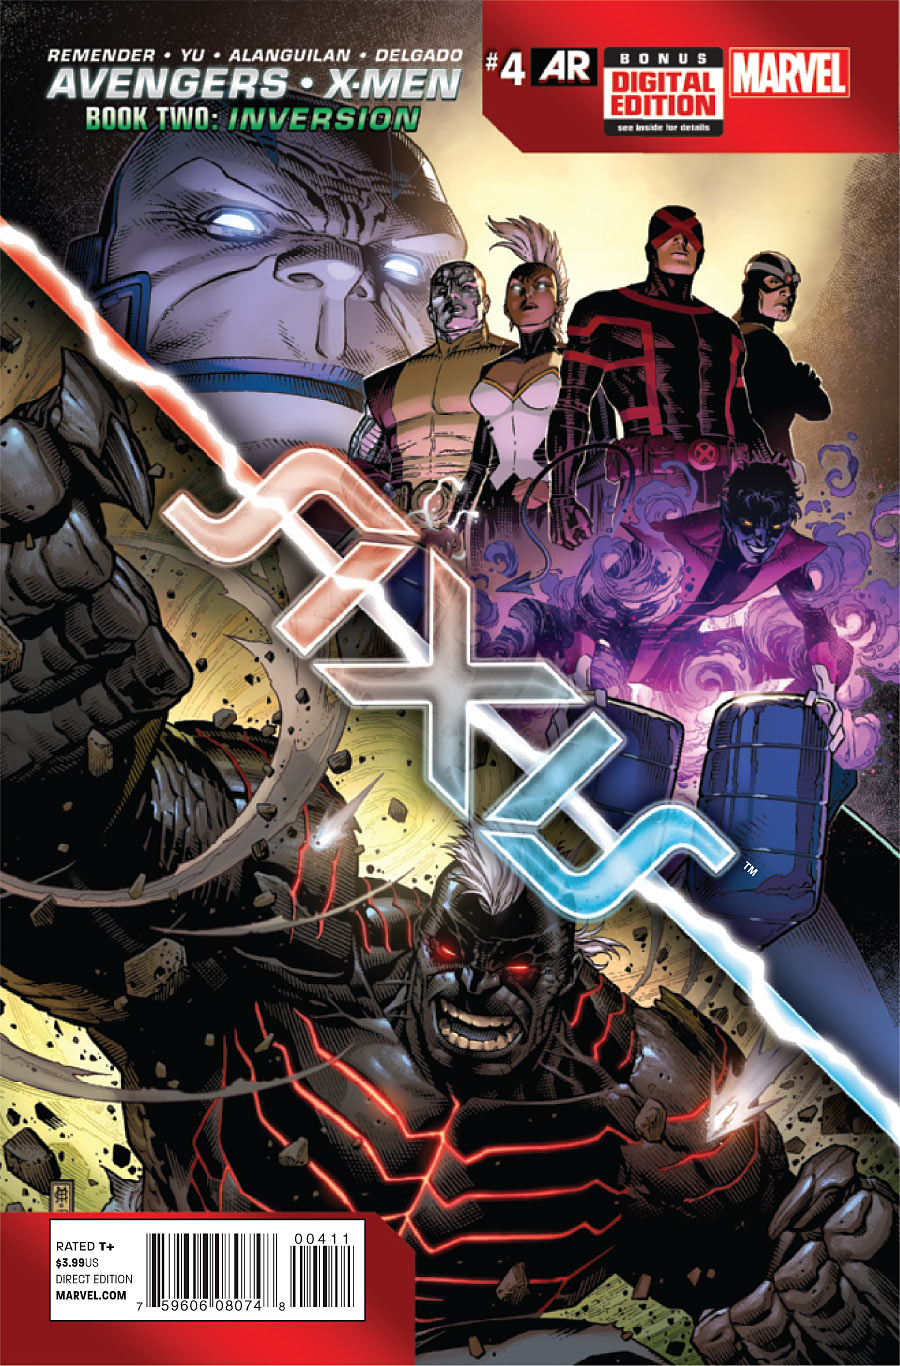 Avengers & X-Men: AXIS Vol 1 4